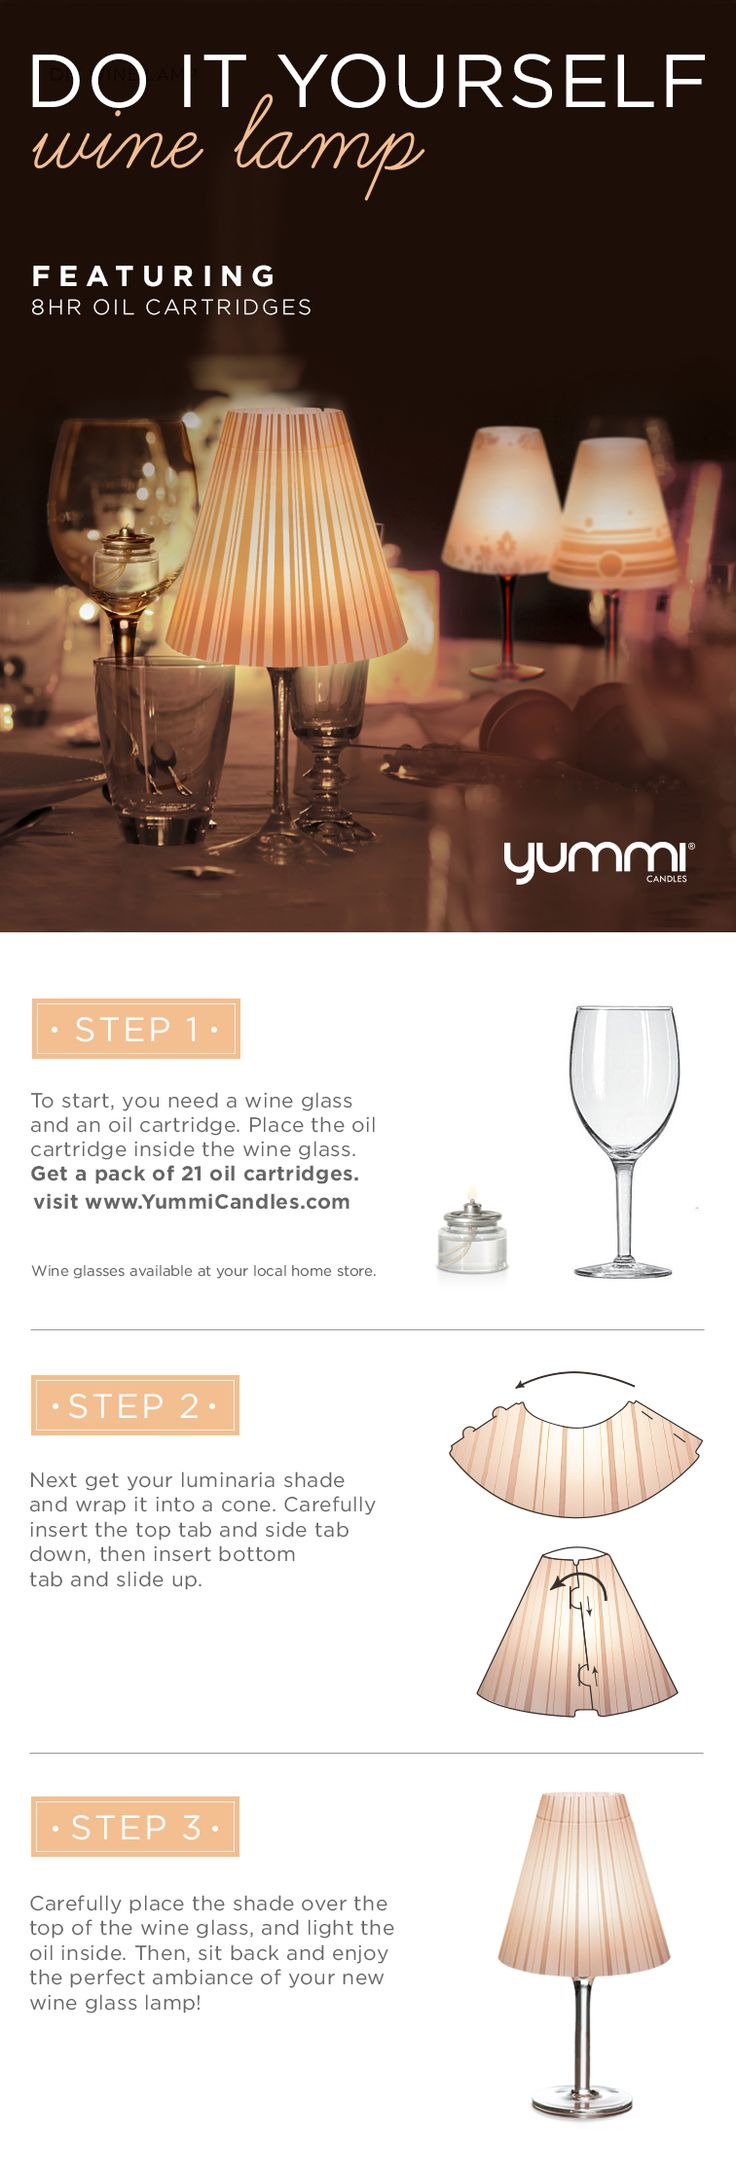 DIY Wine Lamp! Bonus 10% OFF Oil Cartridges Shop Now at www.YummiCandles.com